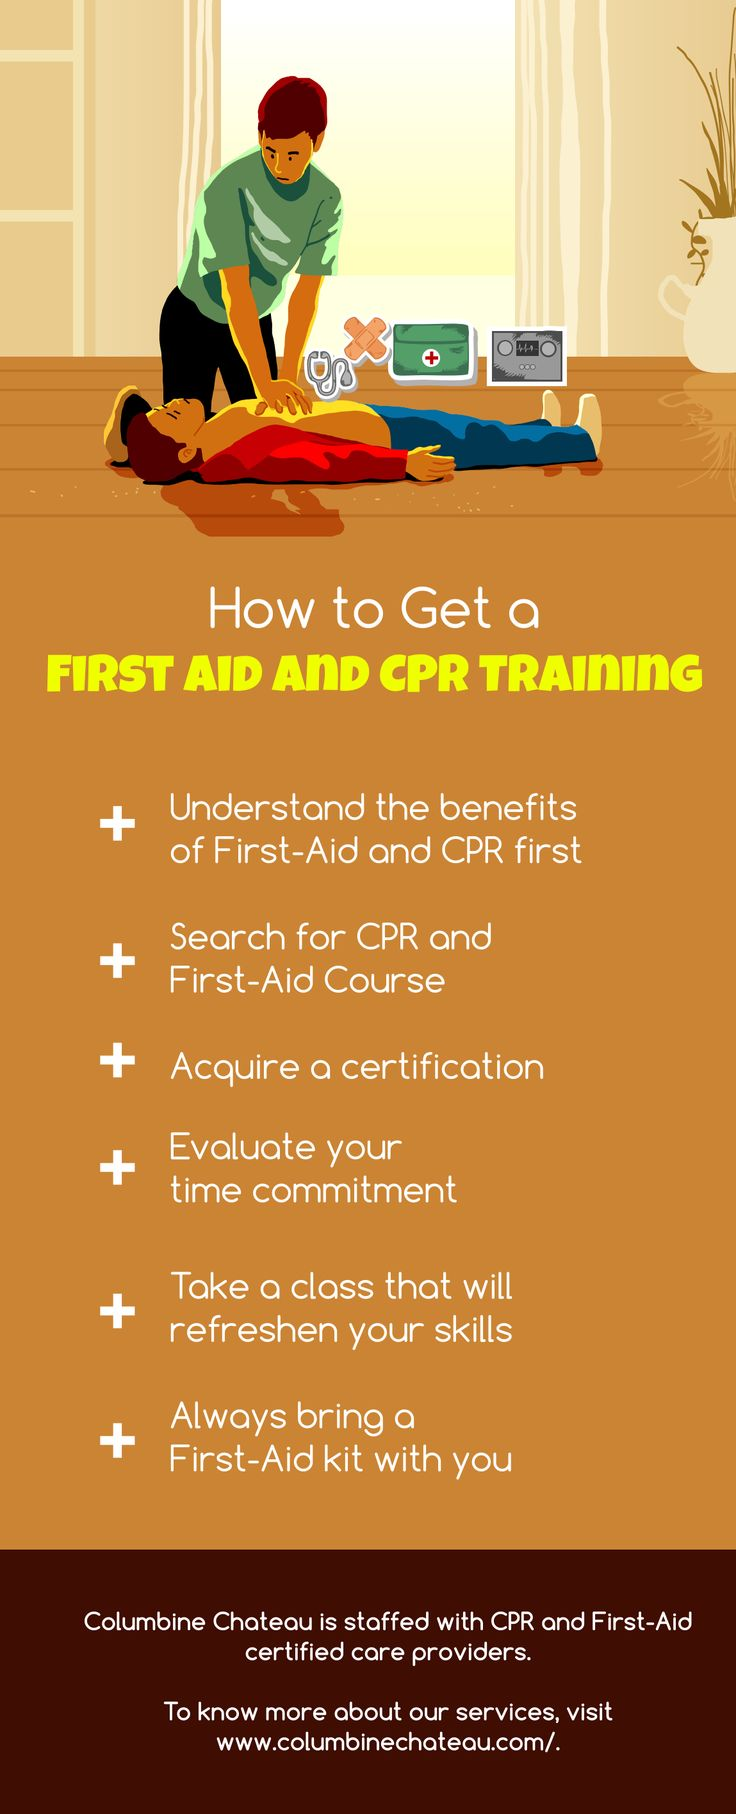 Best 25 cpr training ideas on pinterest cardiopulmonary how to get a first aid and cpr training training columbinechateau xflitez Choice Image